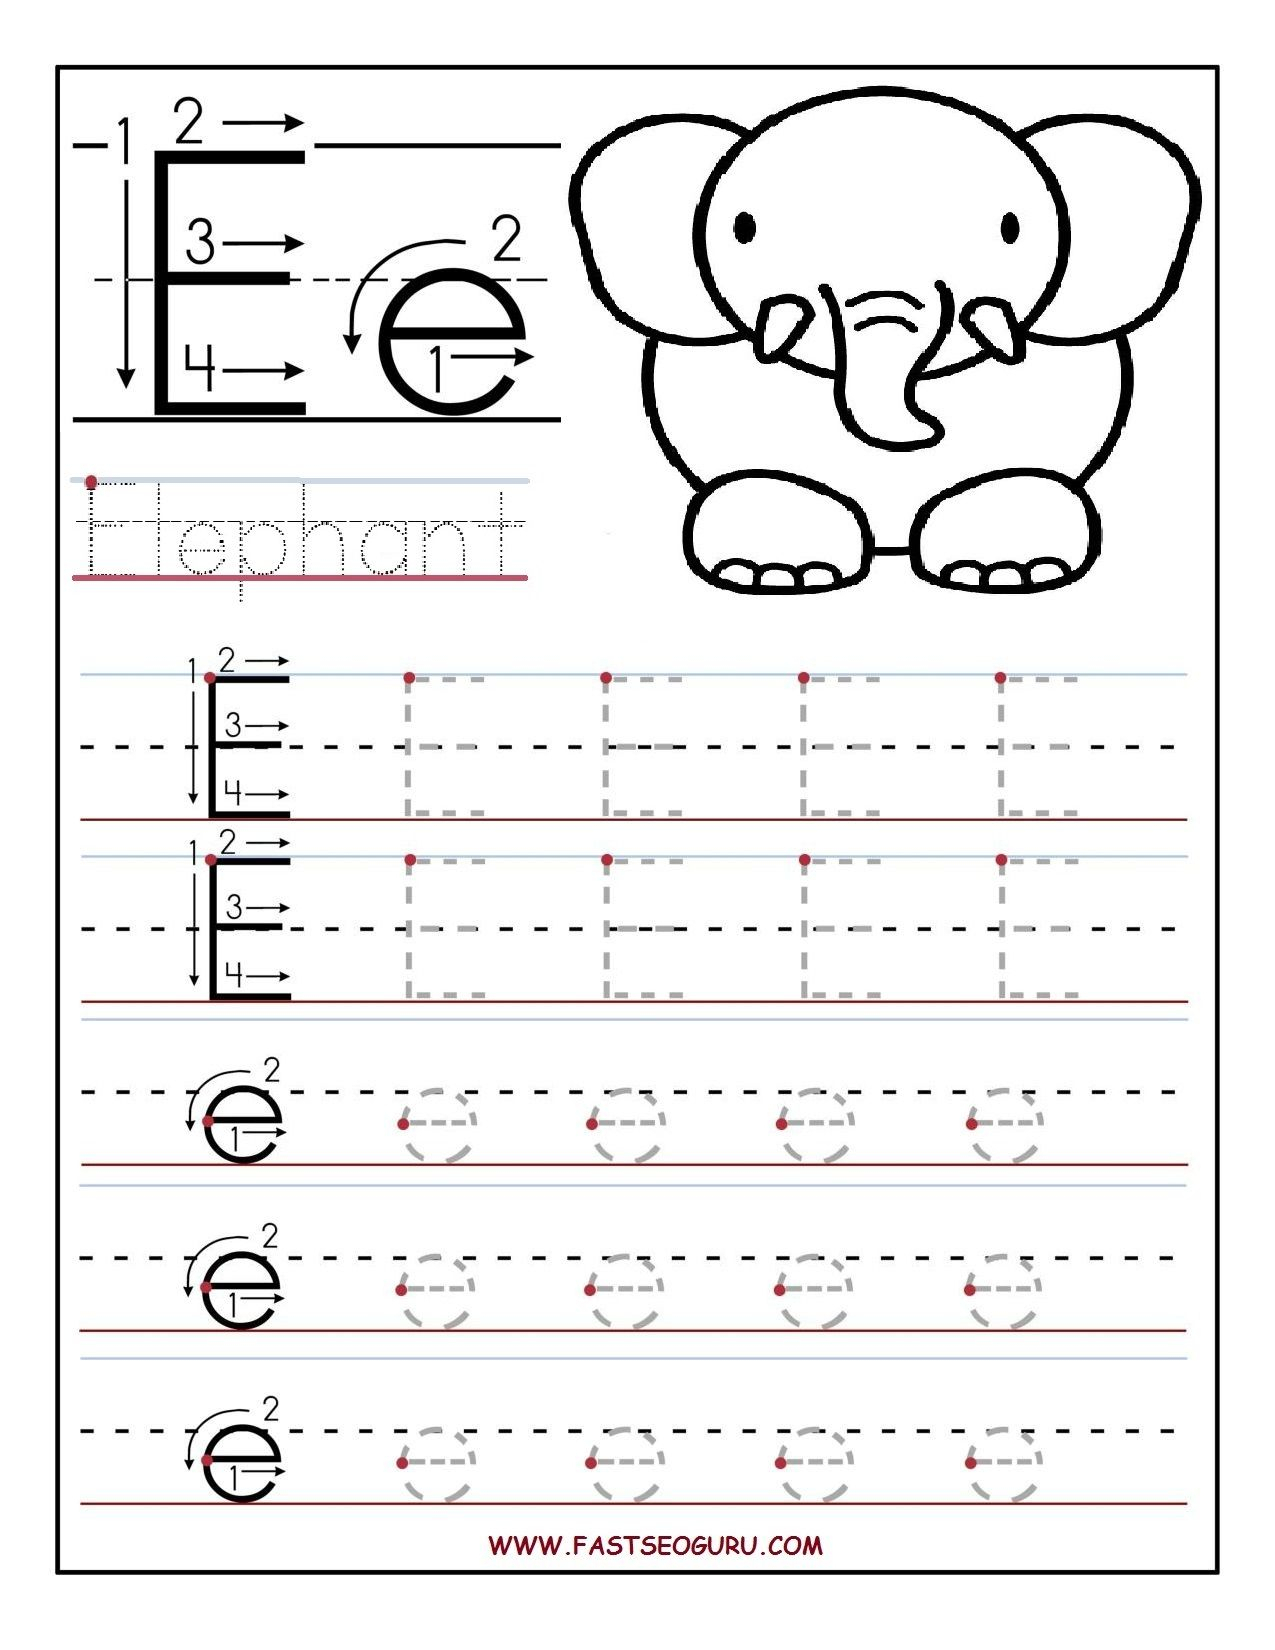 Printable Letter E Tracing Worksheets For Preschool with Letter E Worksheets For Nursery